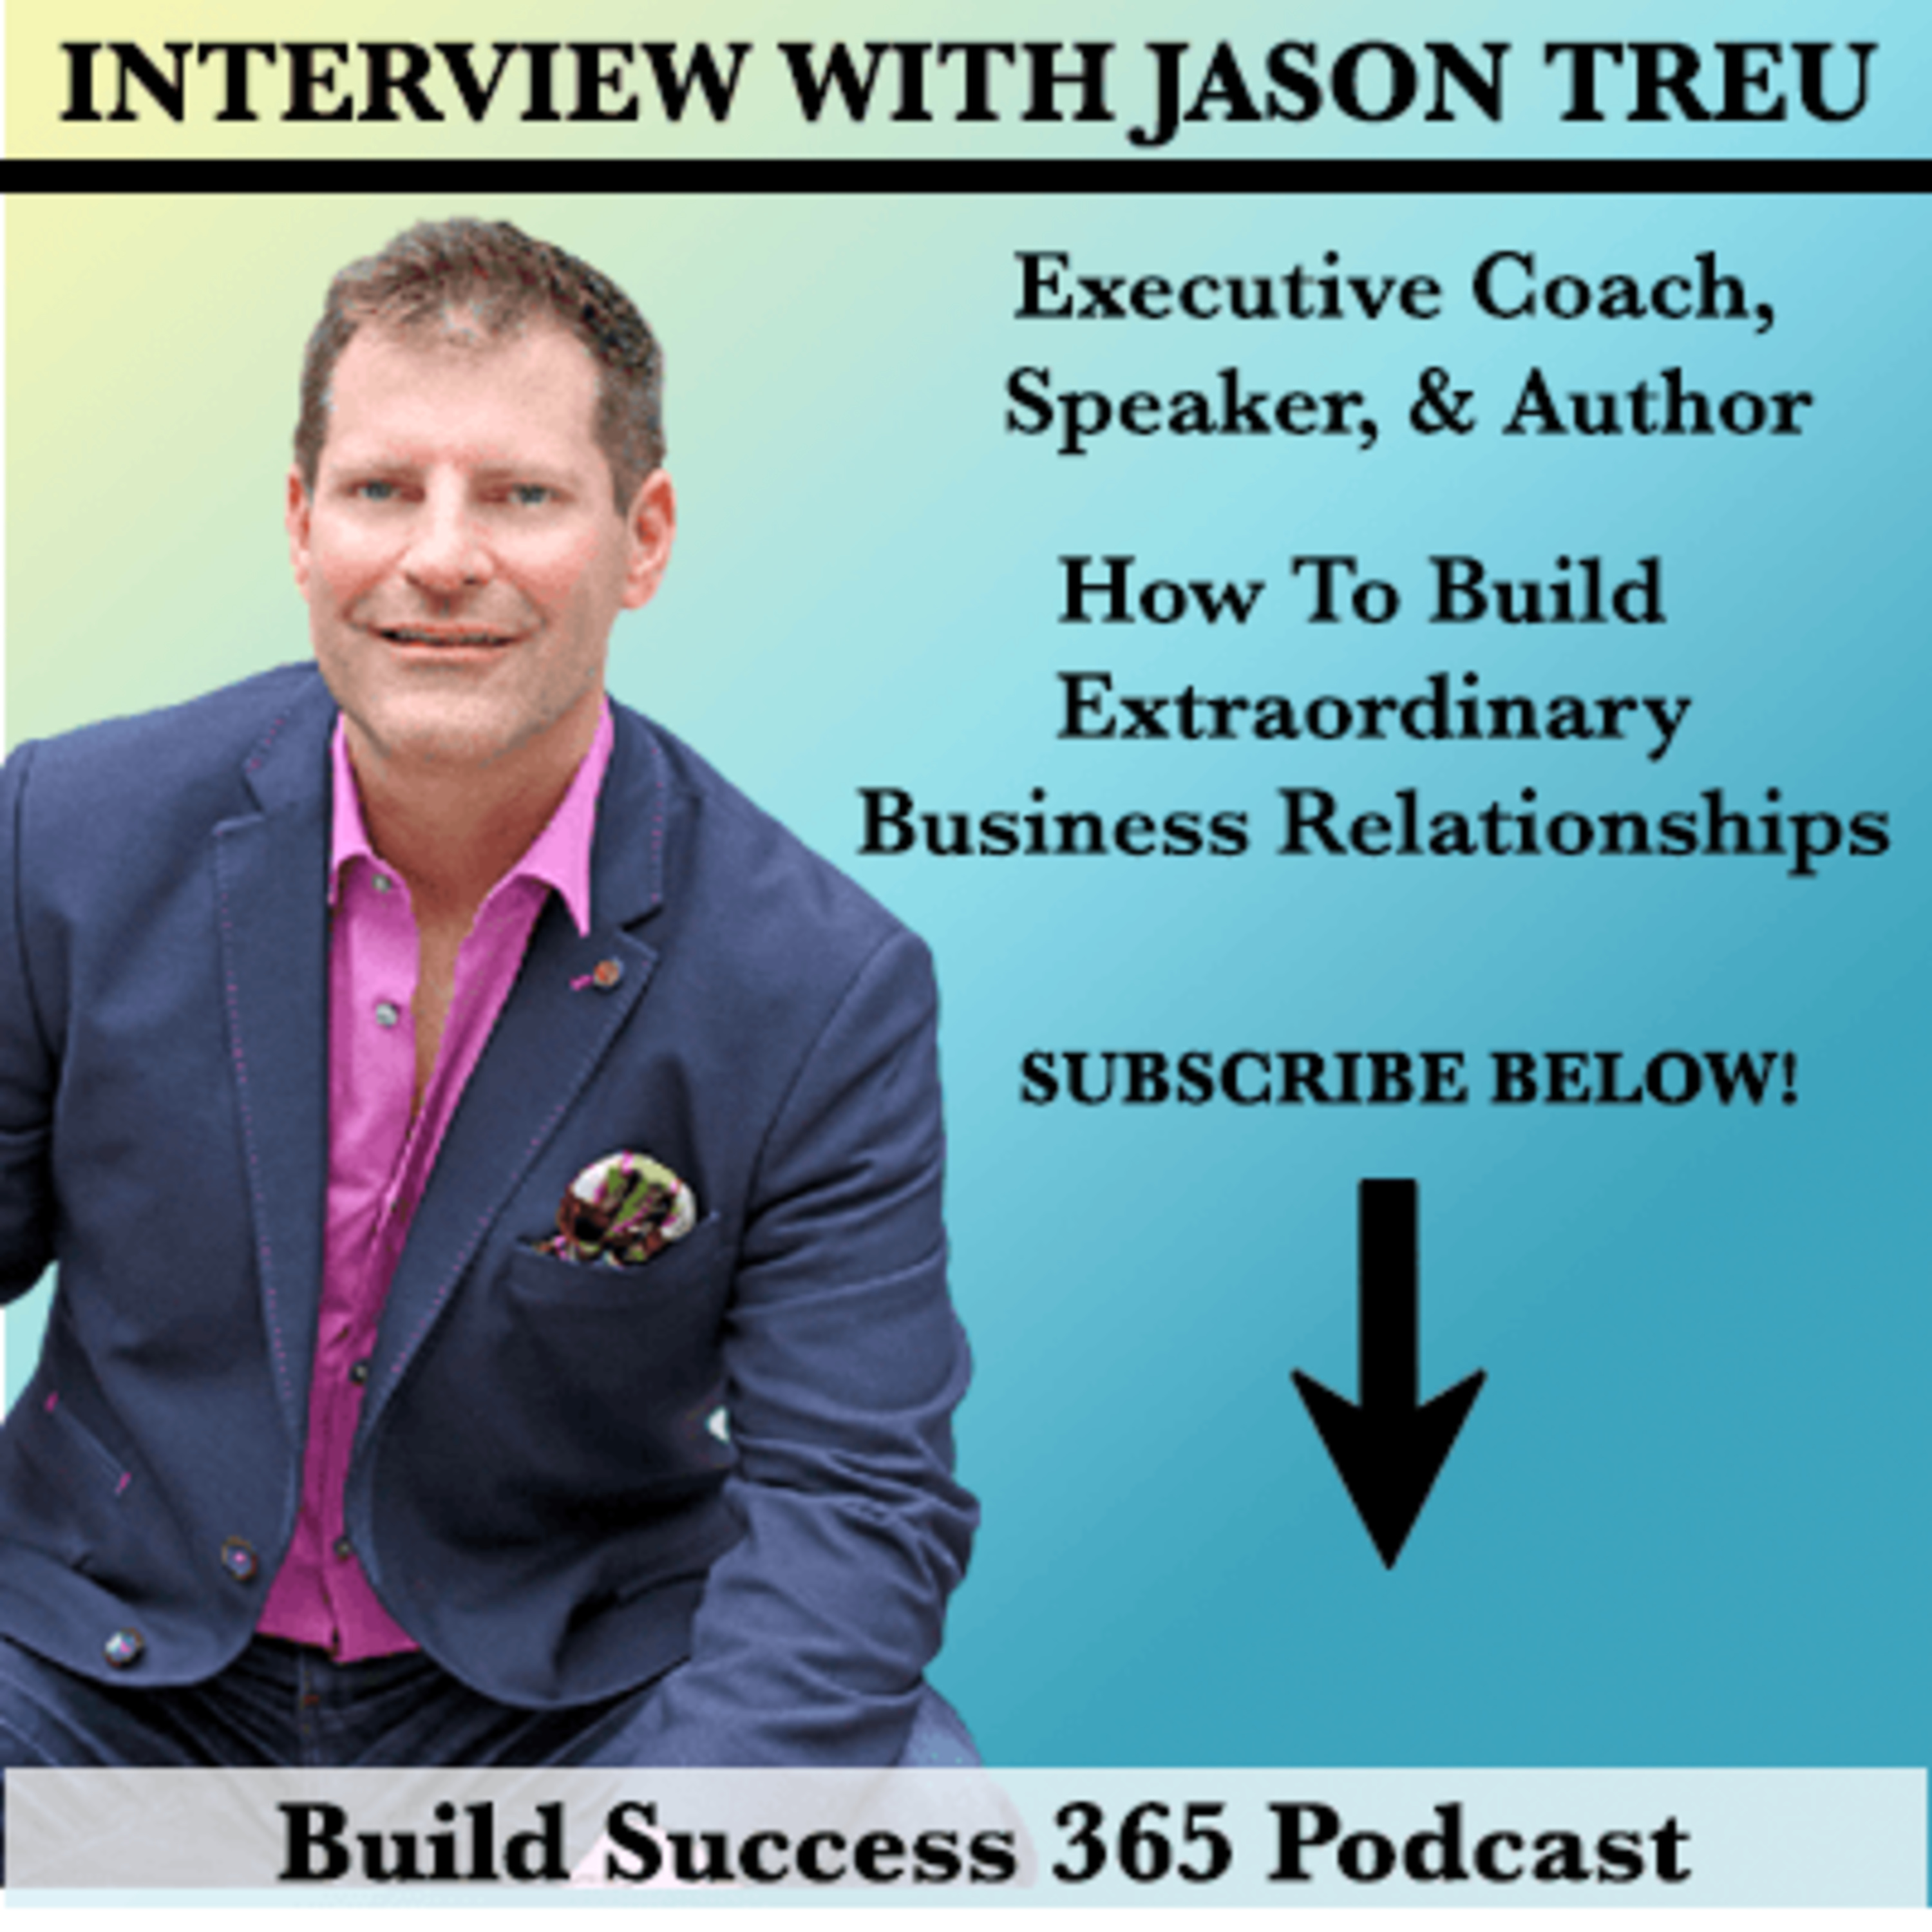 Interview With Jason Treu - How to Build Extraordinary Business Relationships